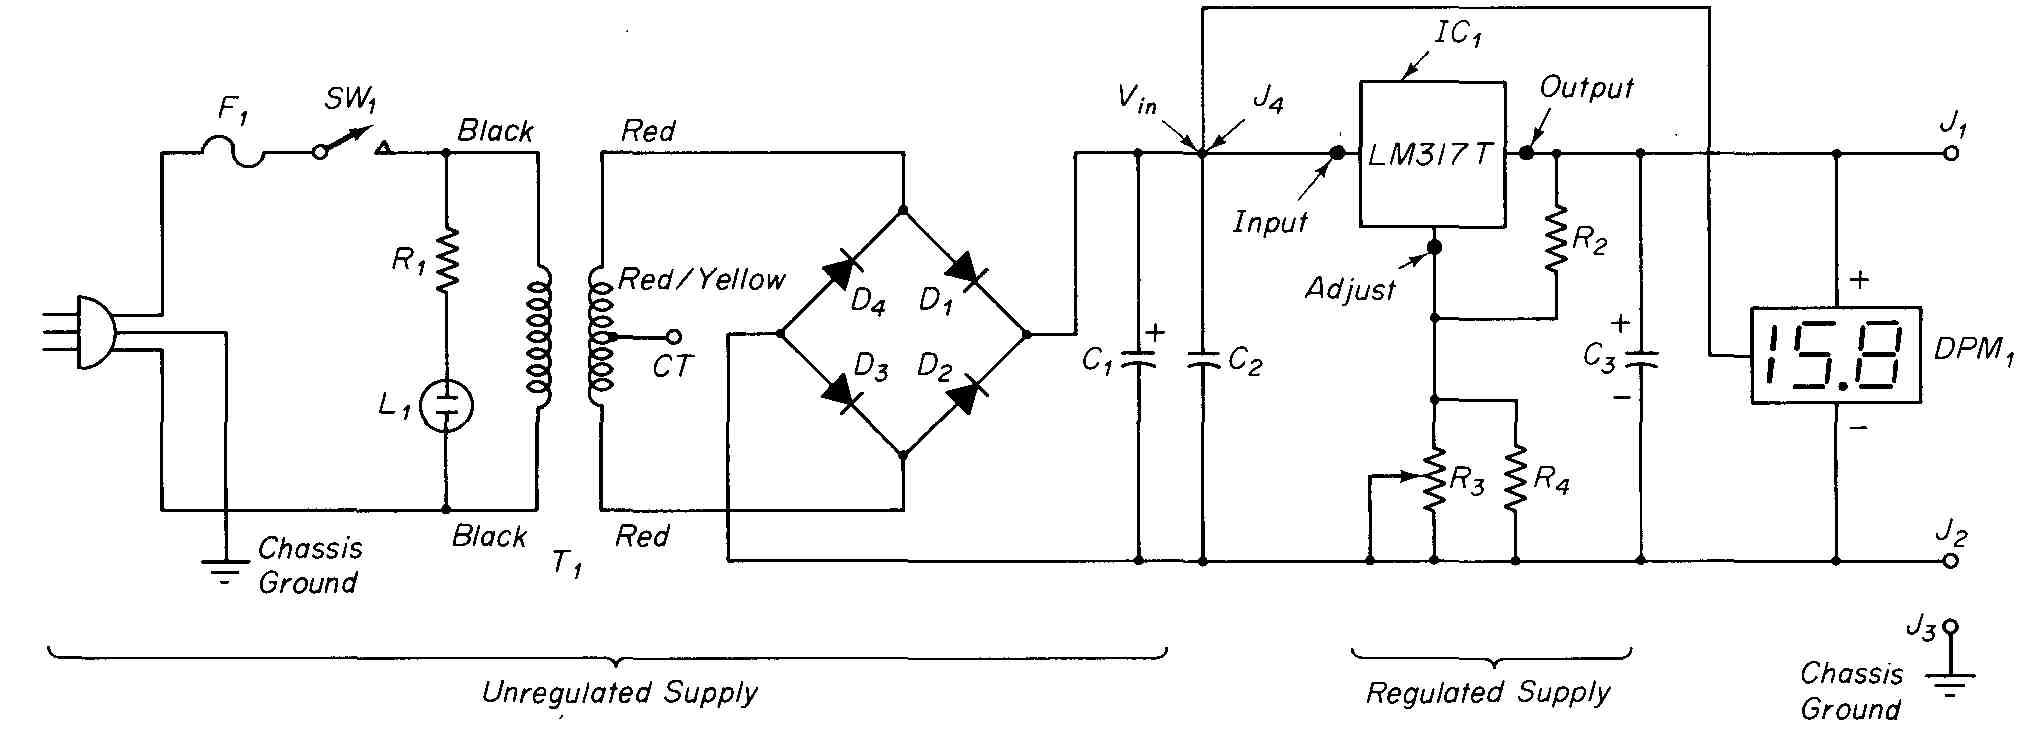 Electronic Techniques Projects Diagram Come From Circuit Symmetrical Regulated Power Supply 6 Schematic Of Variable Voltage Operation